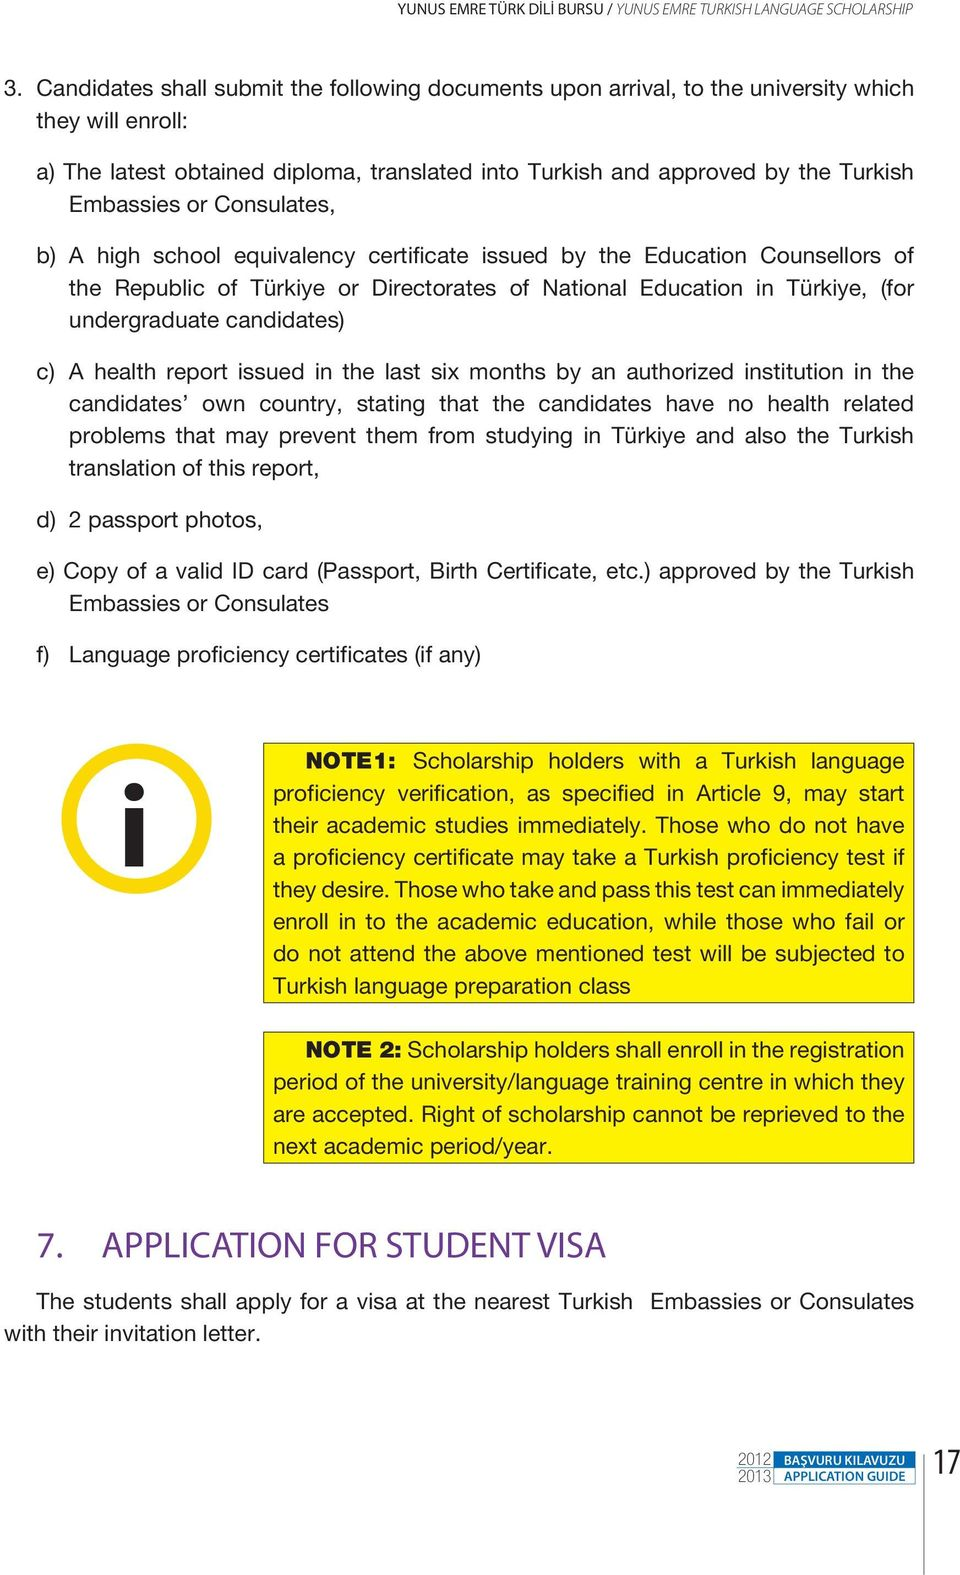 or Consulates, b) A high school equivalency certificate issued by the Education Counsellors of the Republic of Türkiye or Directorates of National Education in Türkiye, (for undergraduate candidates)